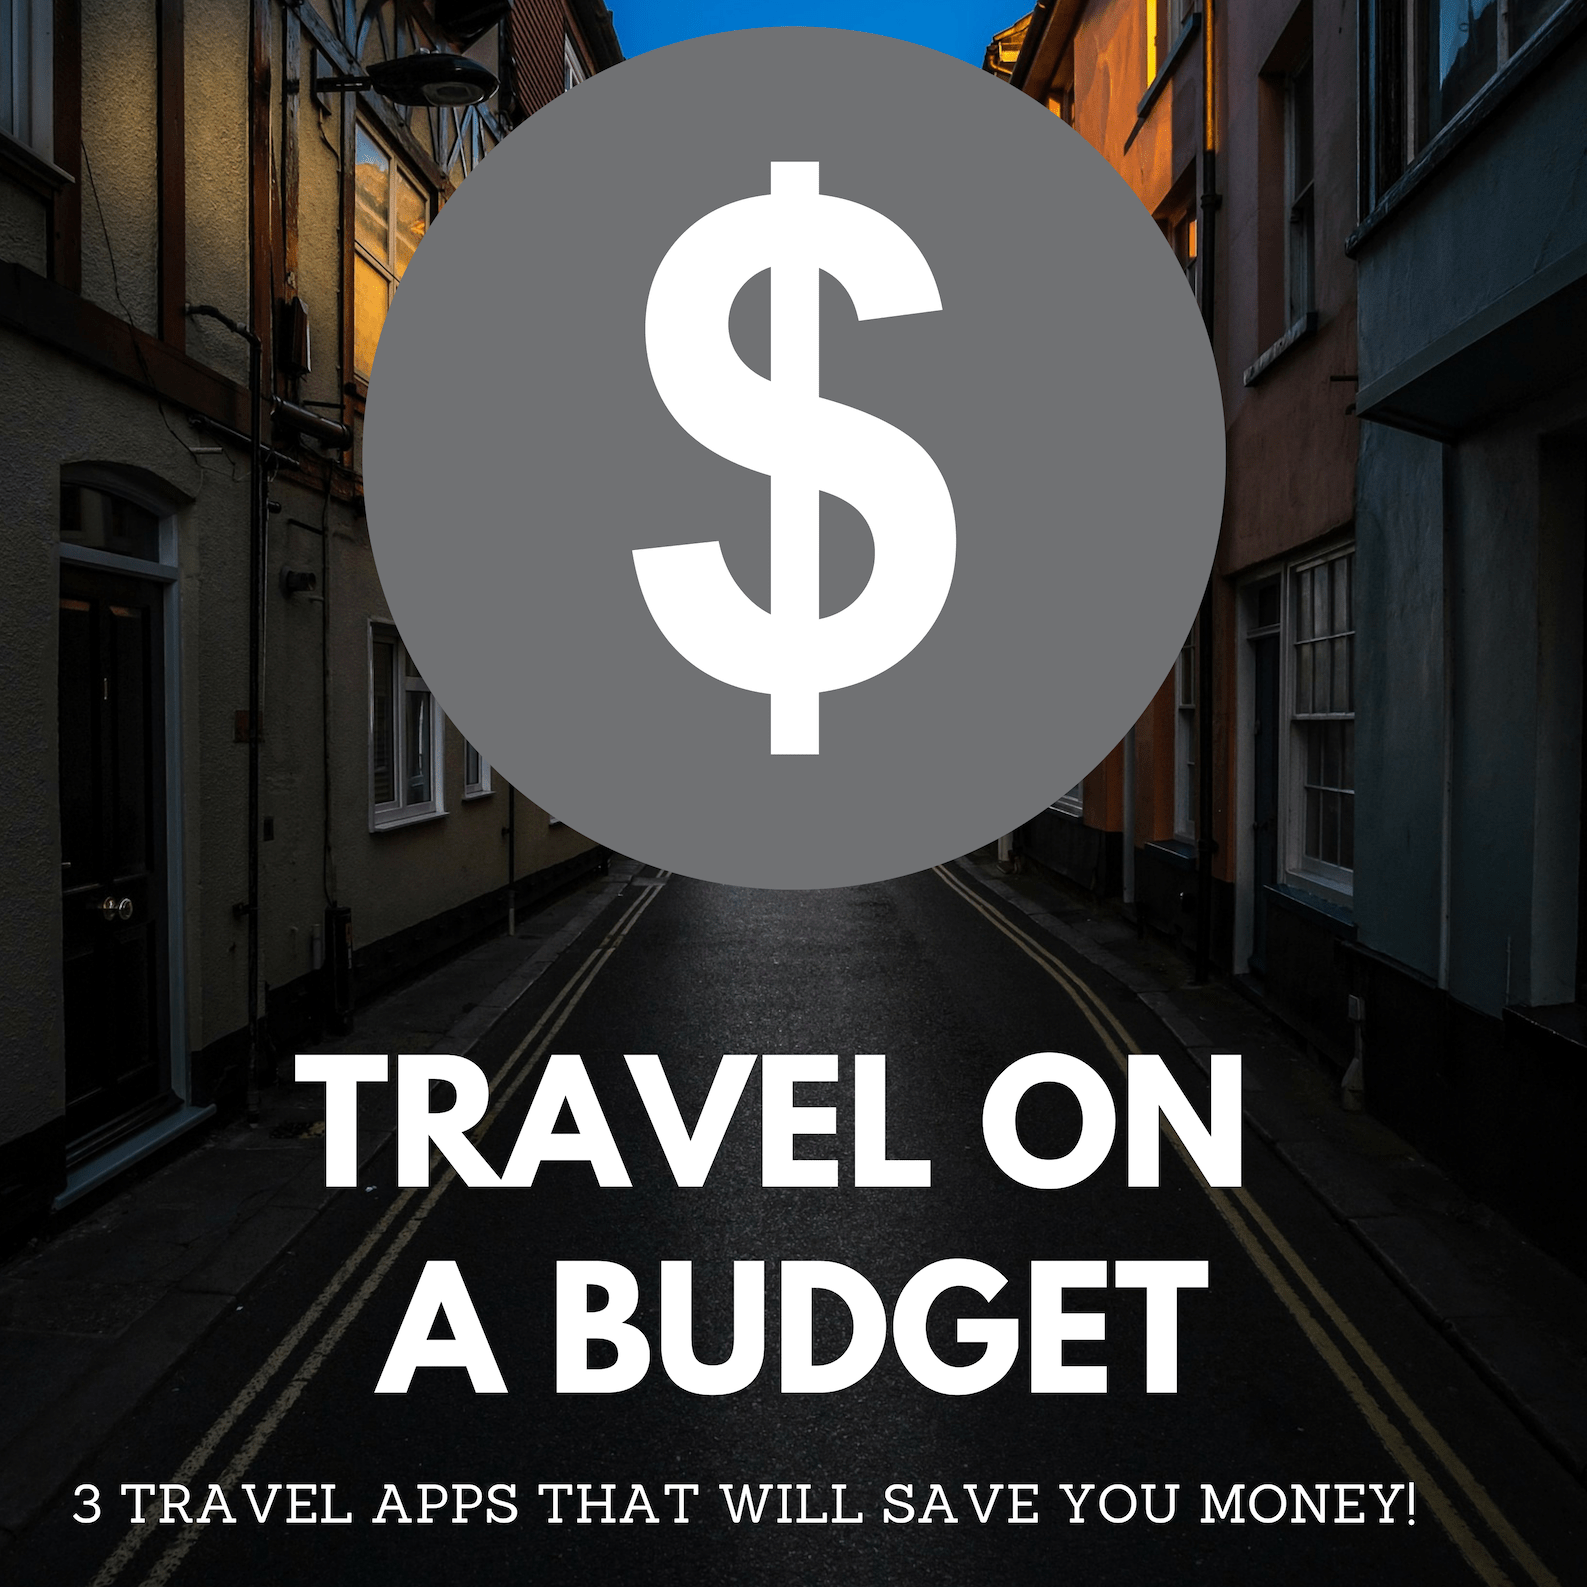 Travelling on a budget – Top 3 Travel Apps!